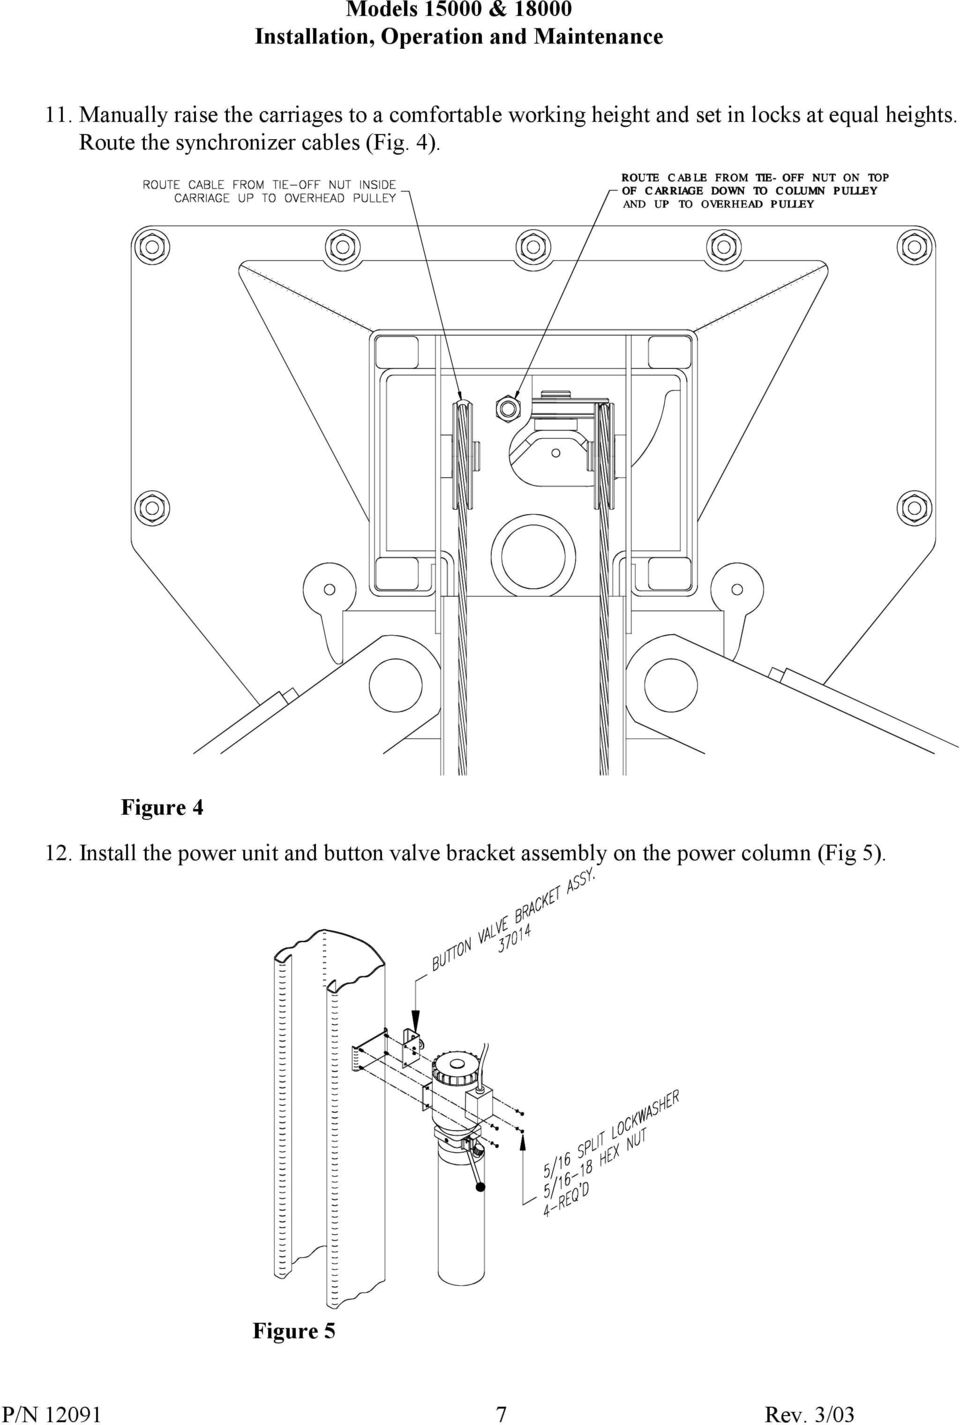 Challenger Lifts Inc Models Pdf 9000 Lb Eagle Lift Wiring Diagram Route Cable From Tie Off Nut On Top Of Carriage Down To Column Pulley And